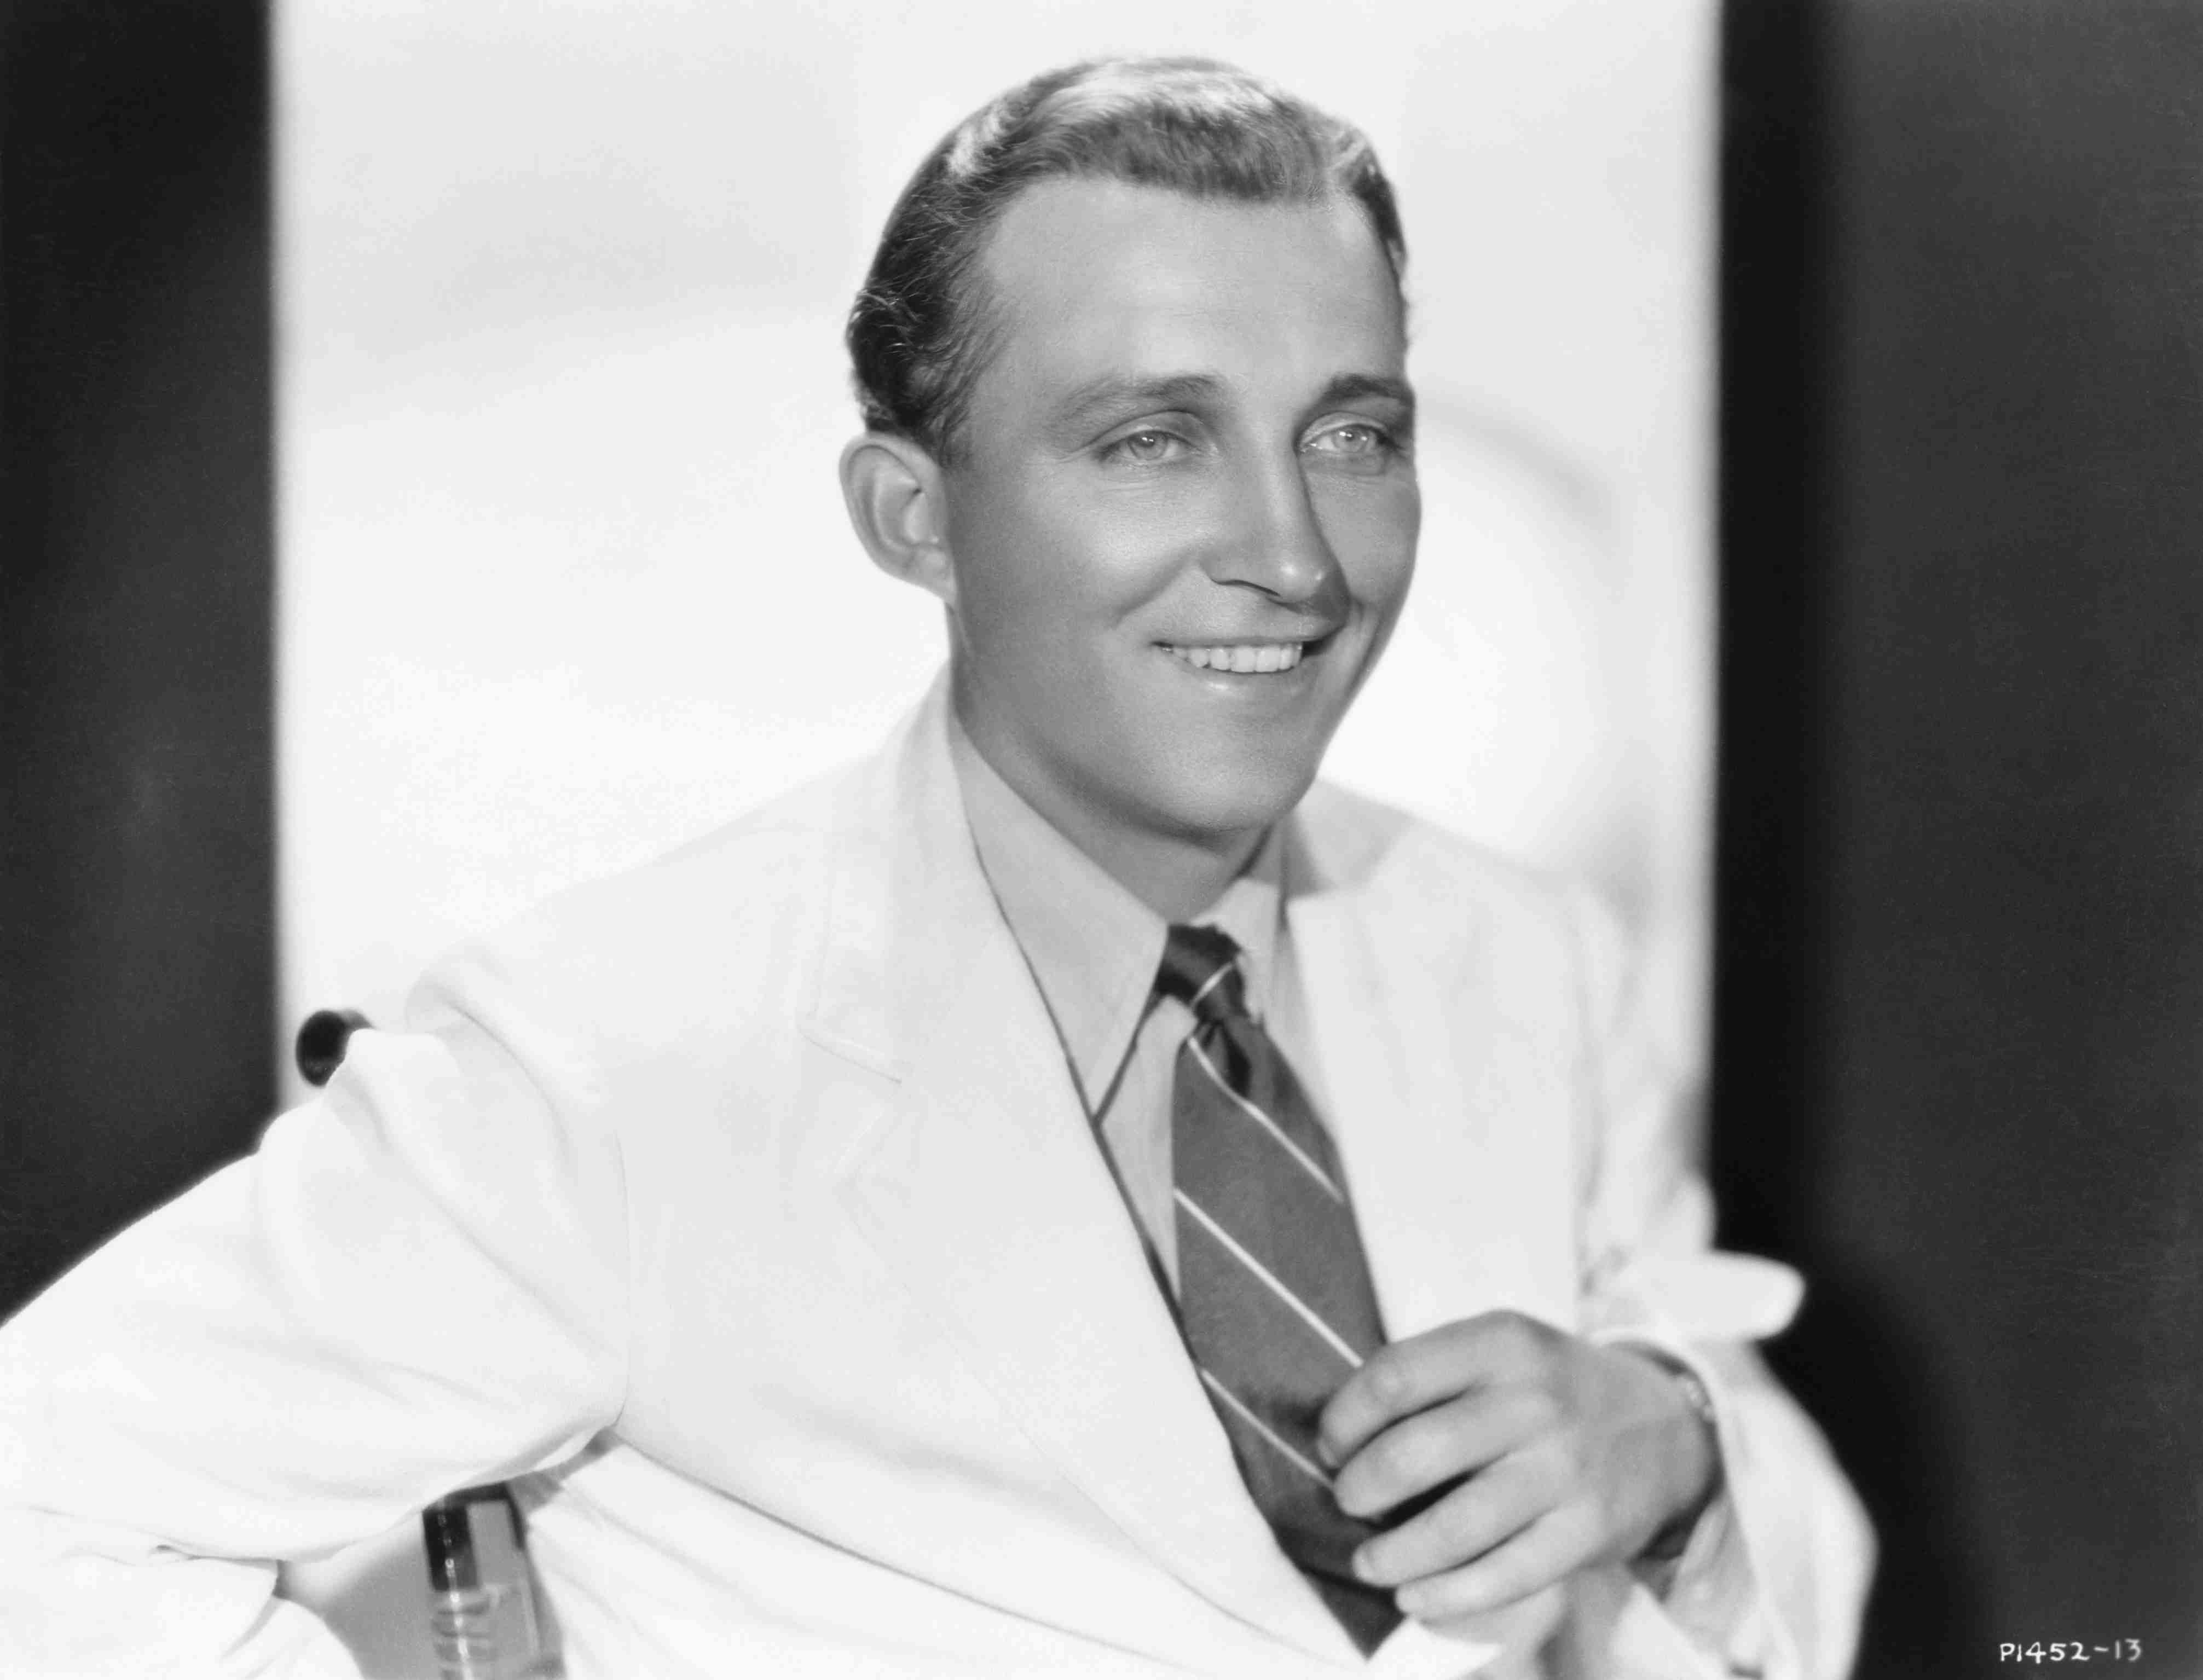 Bing Crosby in Suit and Tie